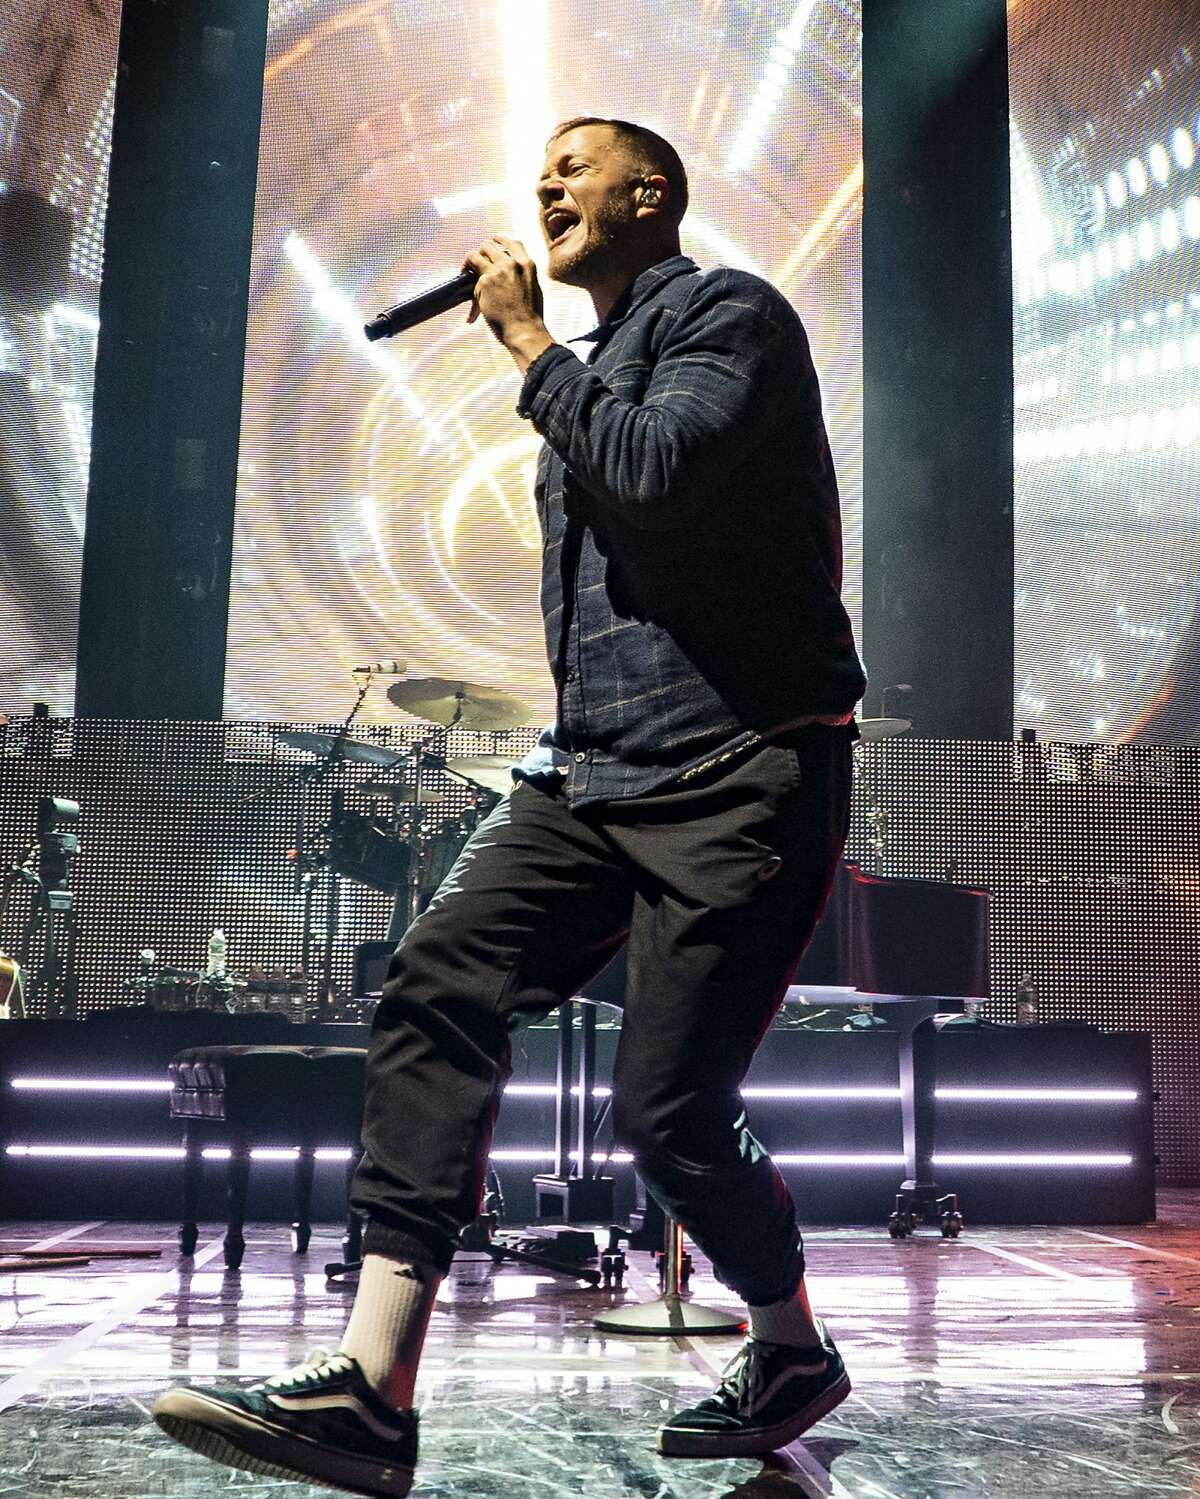 The American pop rock band Imagine Dragons with lead vocalist Dan Reynolds performs at the Xfinity Center, Wednesday, June 6, 2018, in Mansfield, Mass. (Photo by Robert E. Klein/Invision/AP)